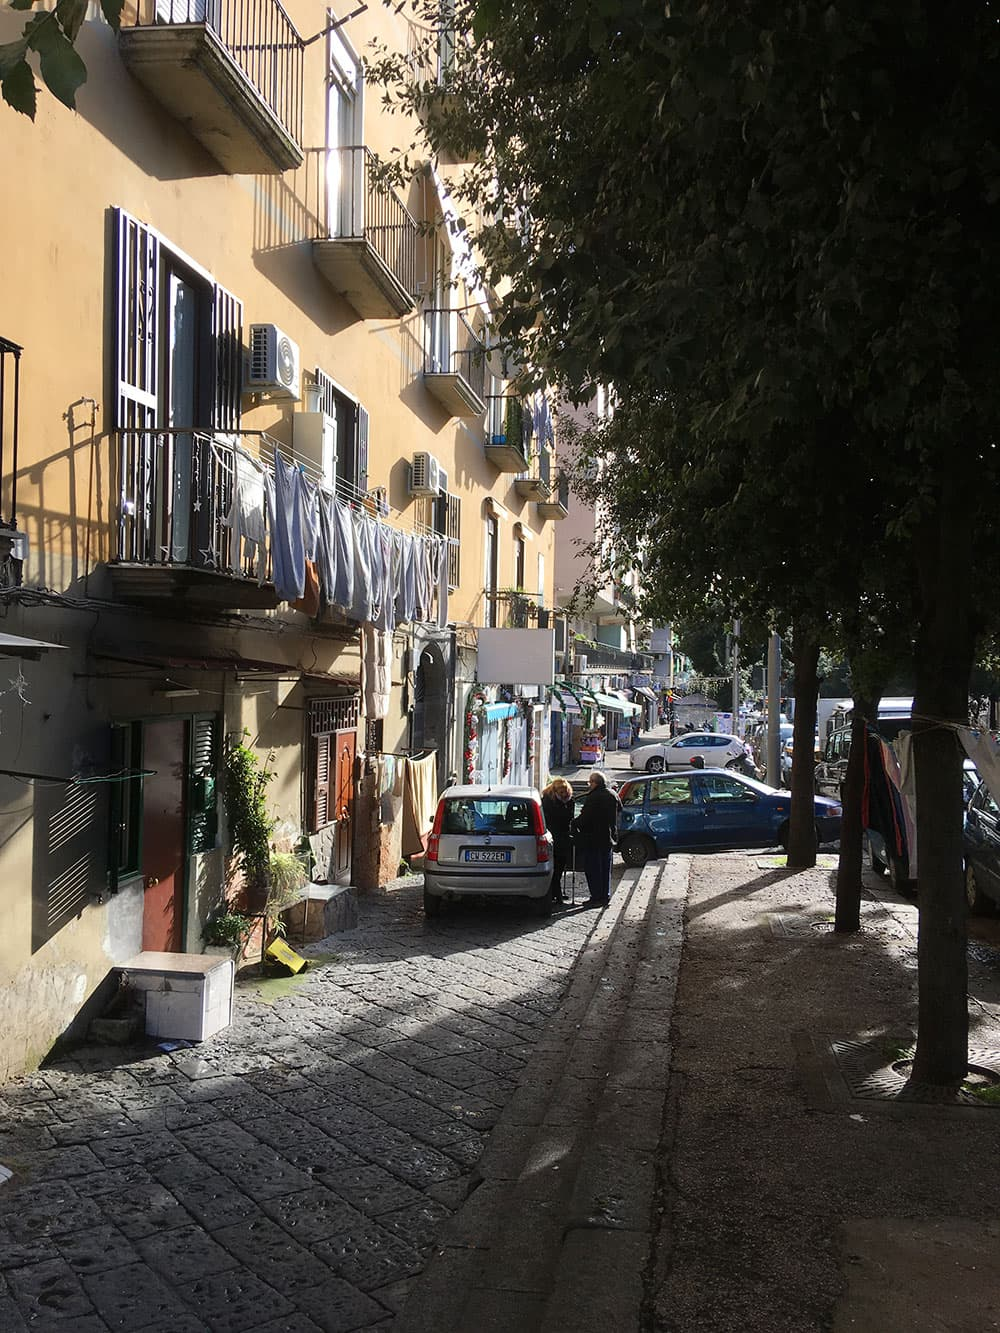 Authentic charm down a street in Naples